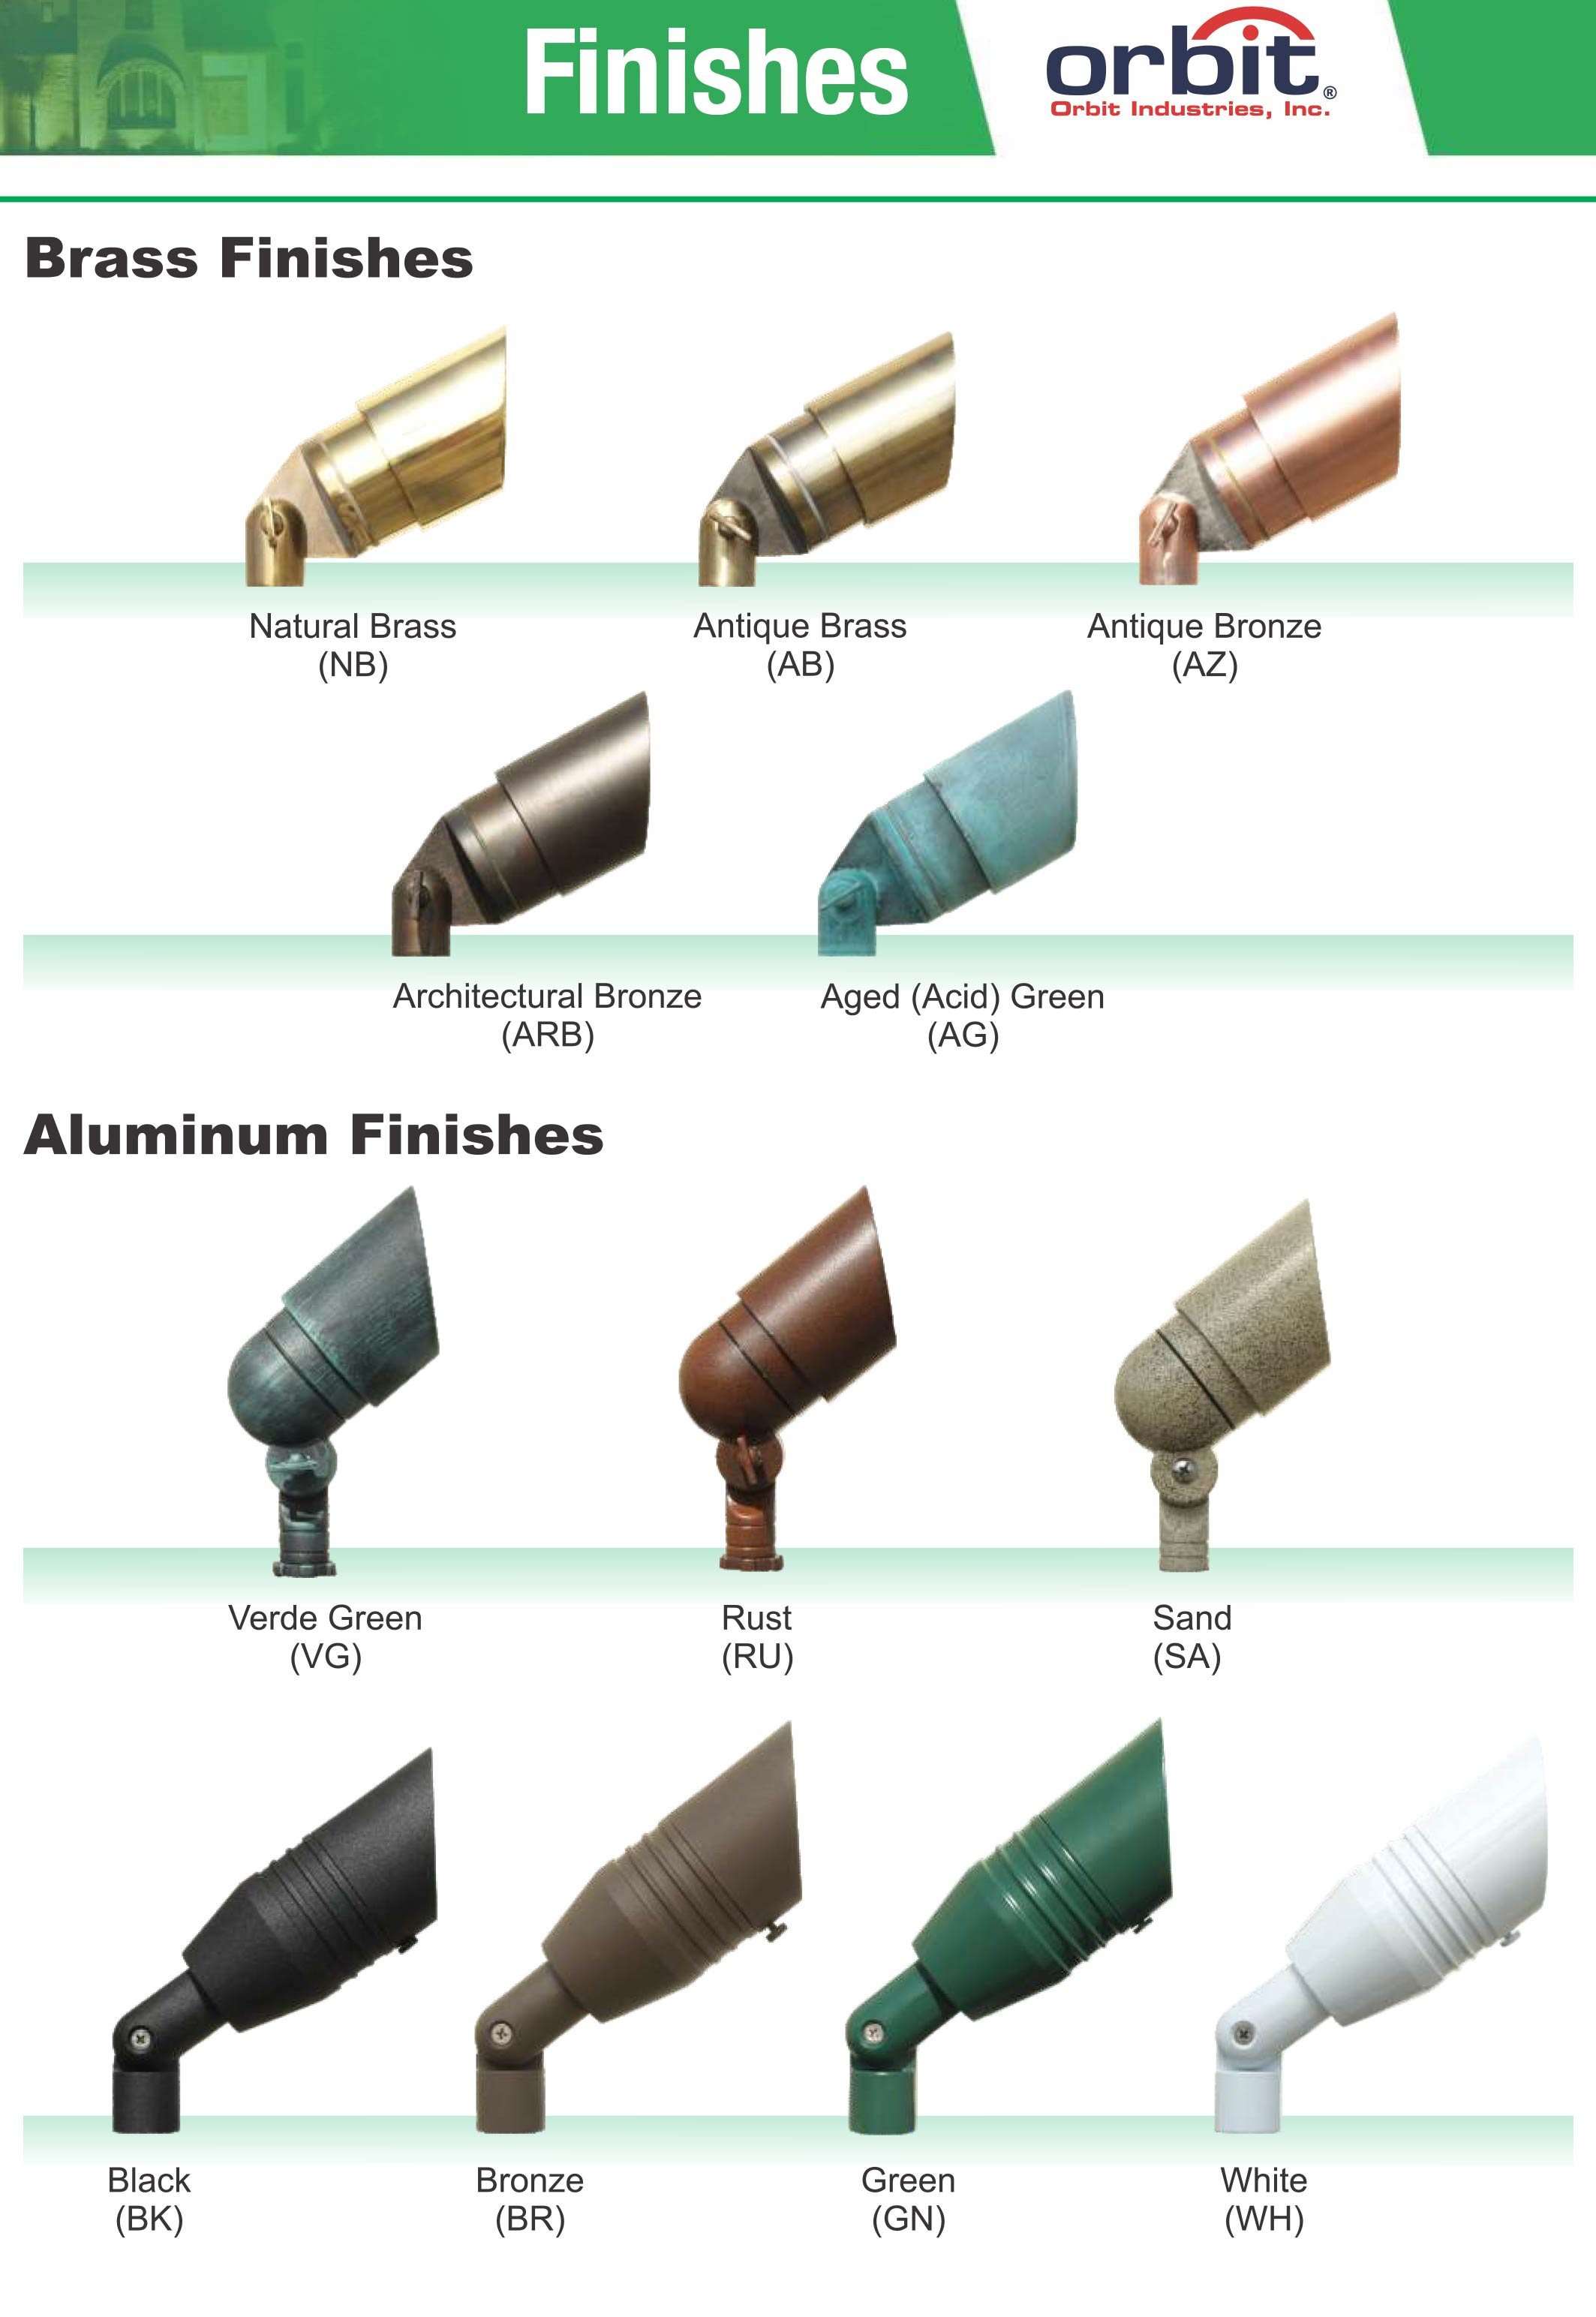 Orbit Industries Color Finish Options Chart